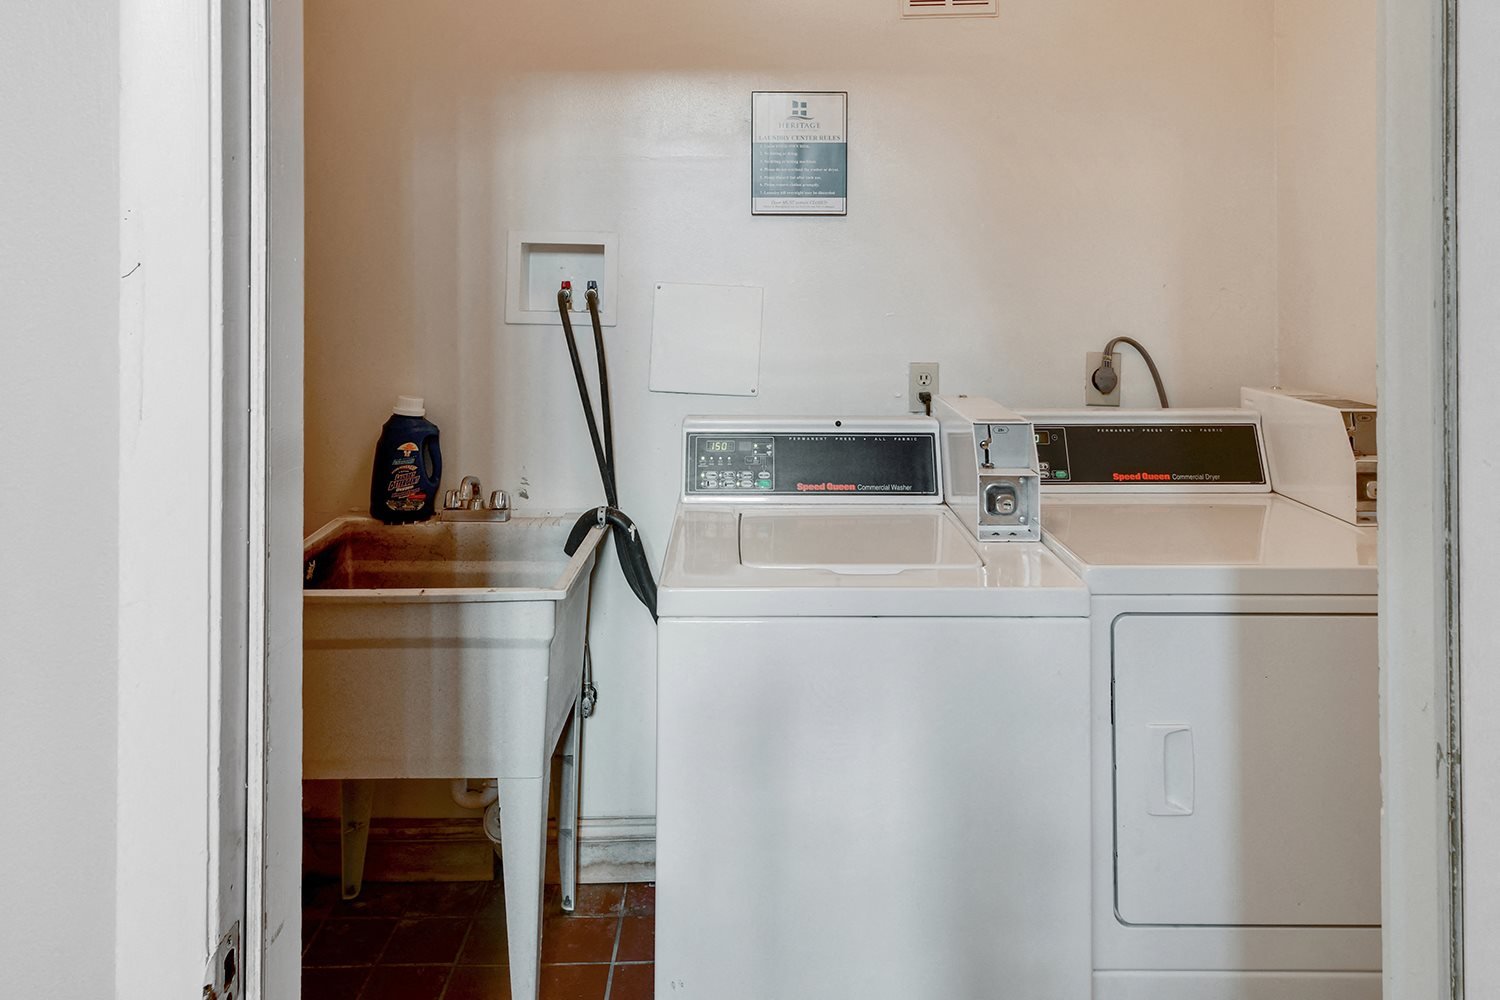 In Home Full Size Washer And Dryer at Heritage Hill Estates Apartments, Ohio, 45227